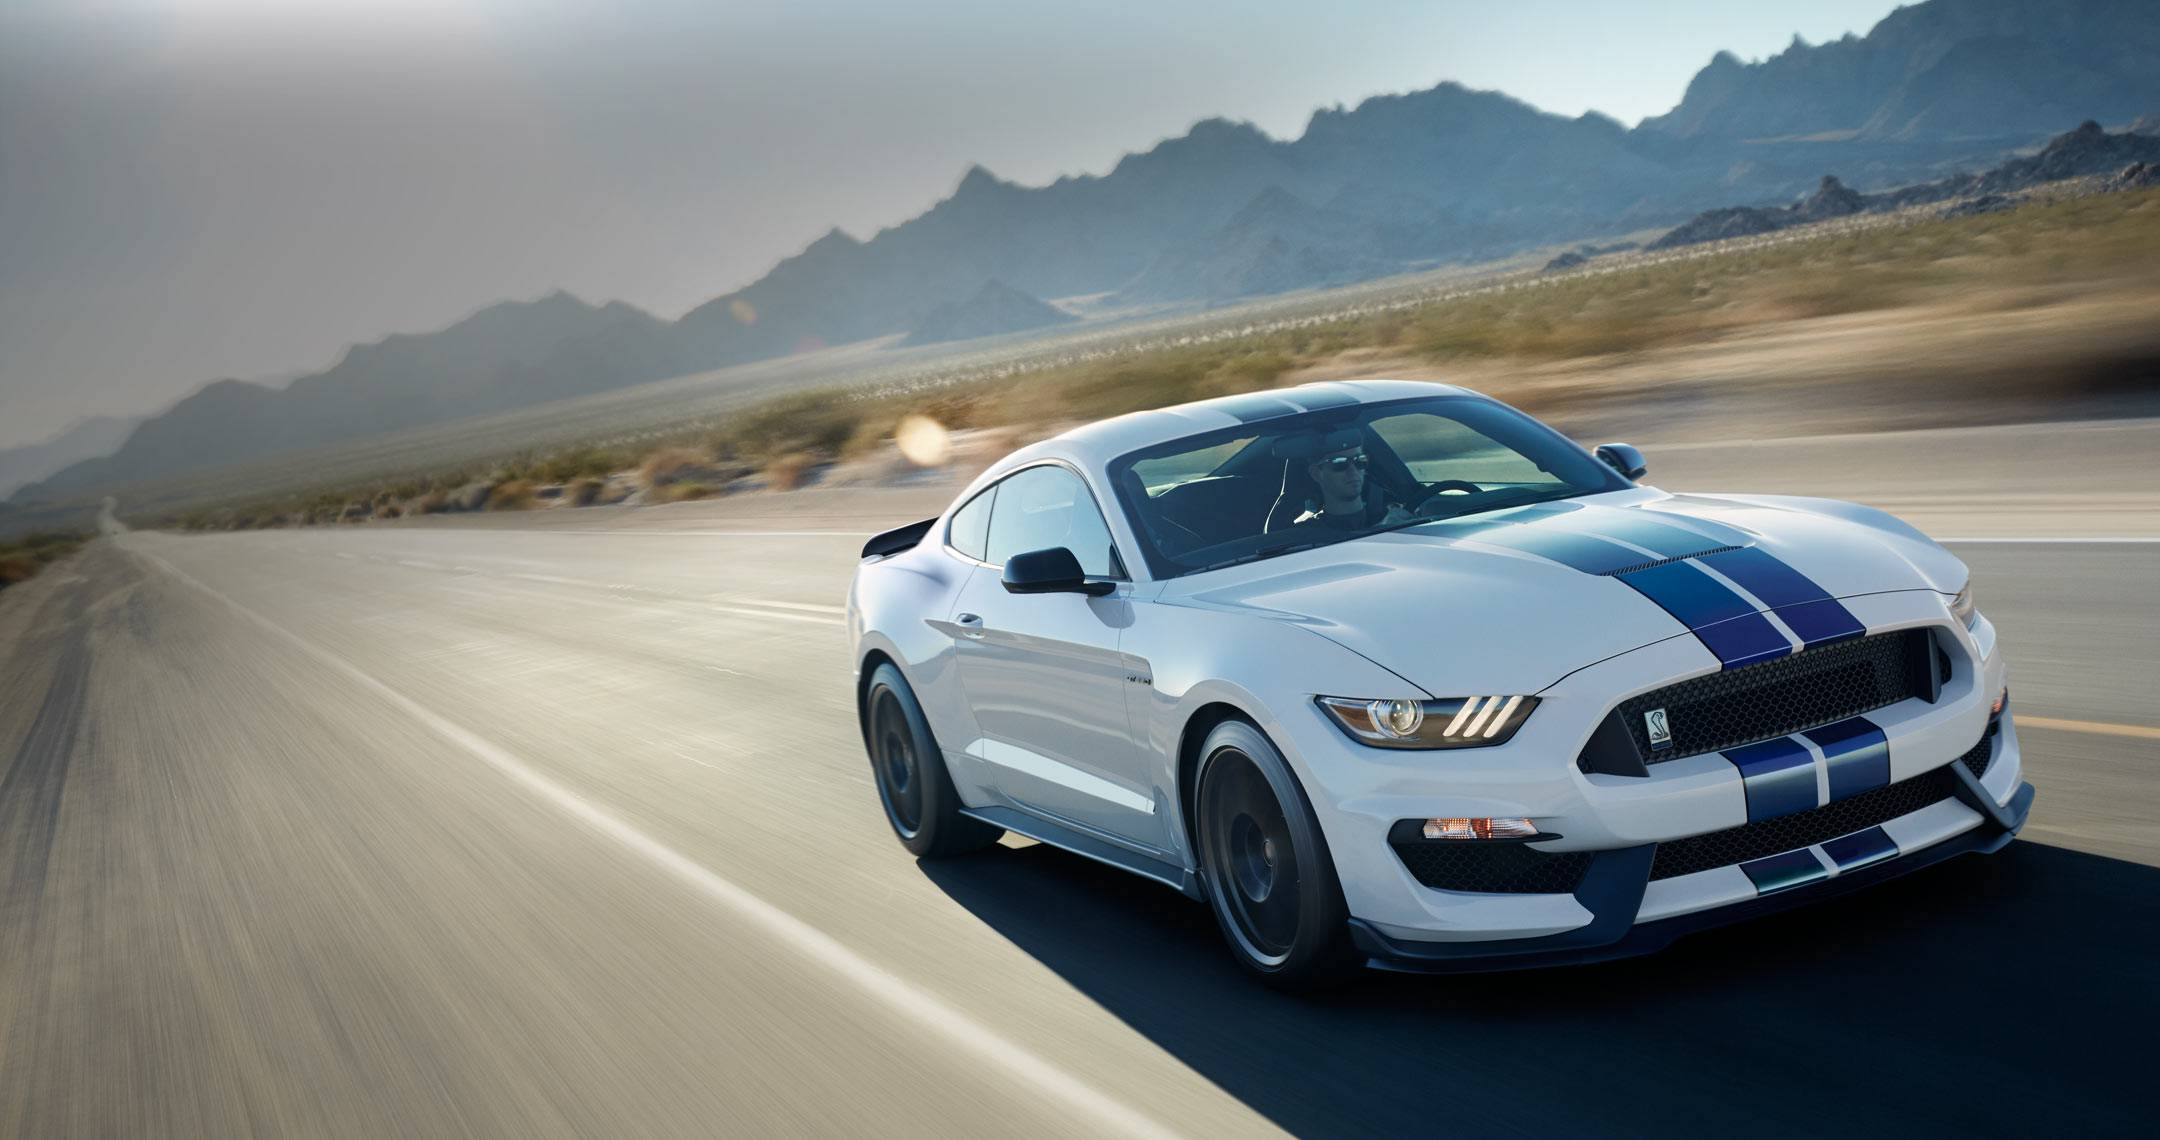 New ford mustang gt350 for sale zelienople pa